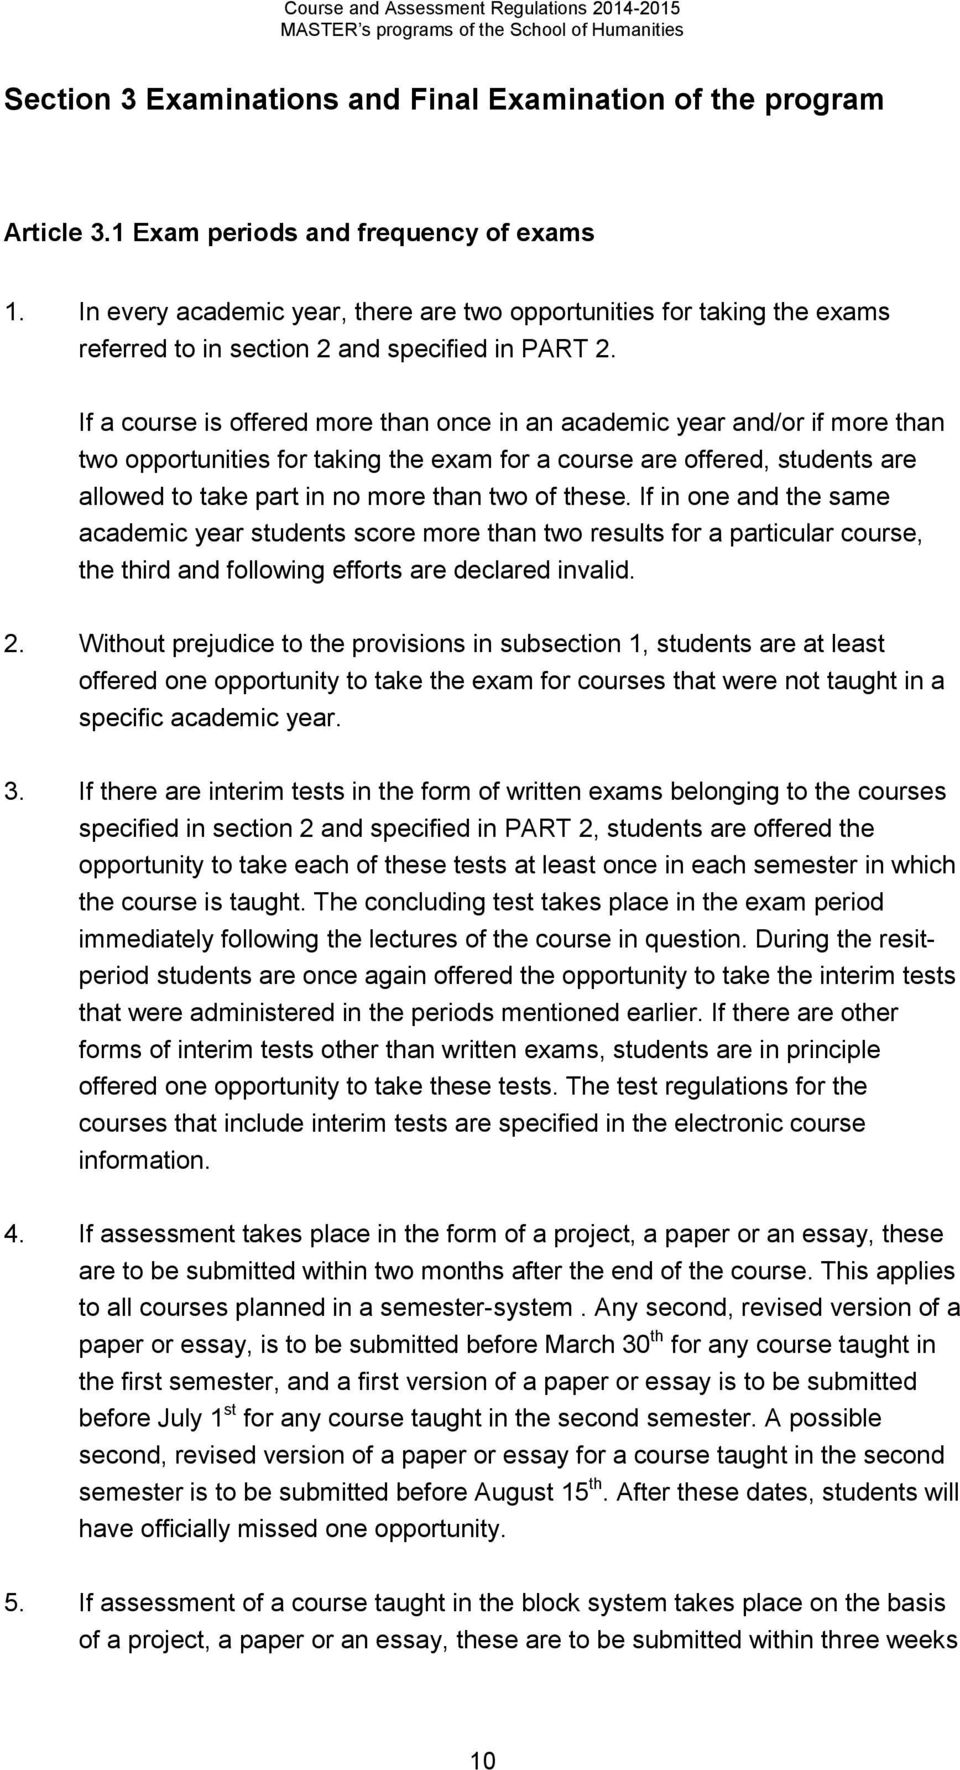 If a course is offered more than once in an academic year and/or if more than two opportunities for taking the exam for a course are offered, students are allowed to take part in no more than two of